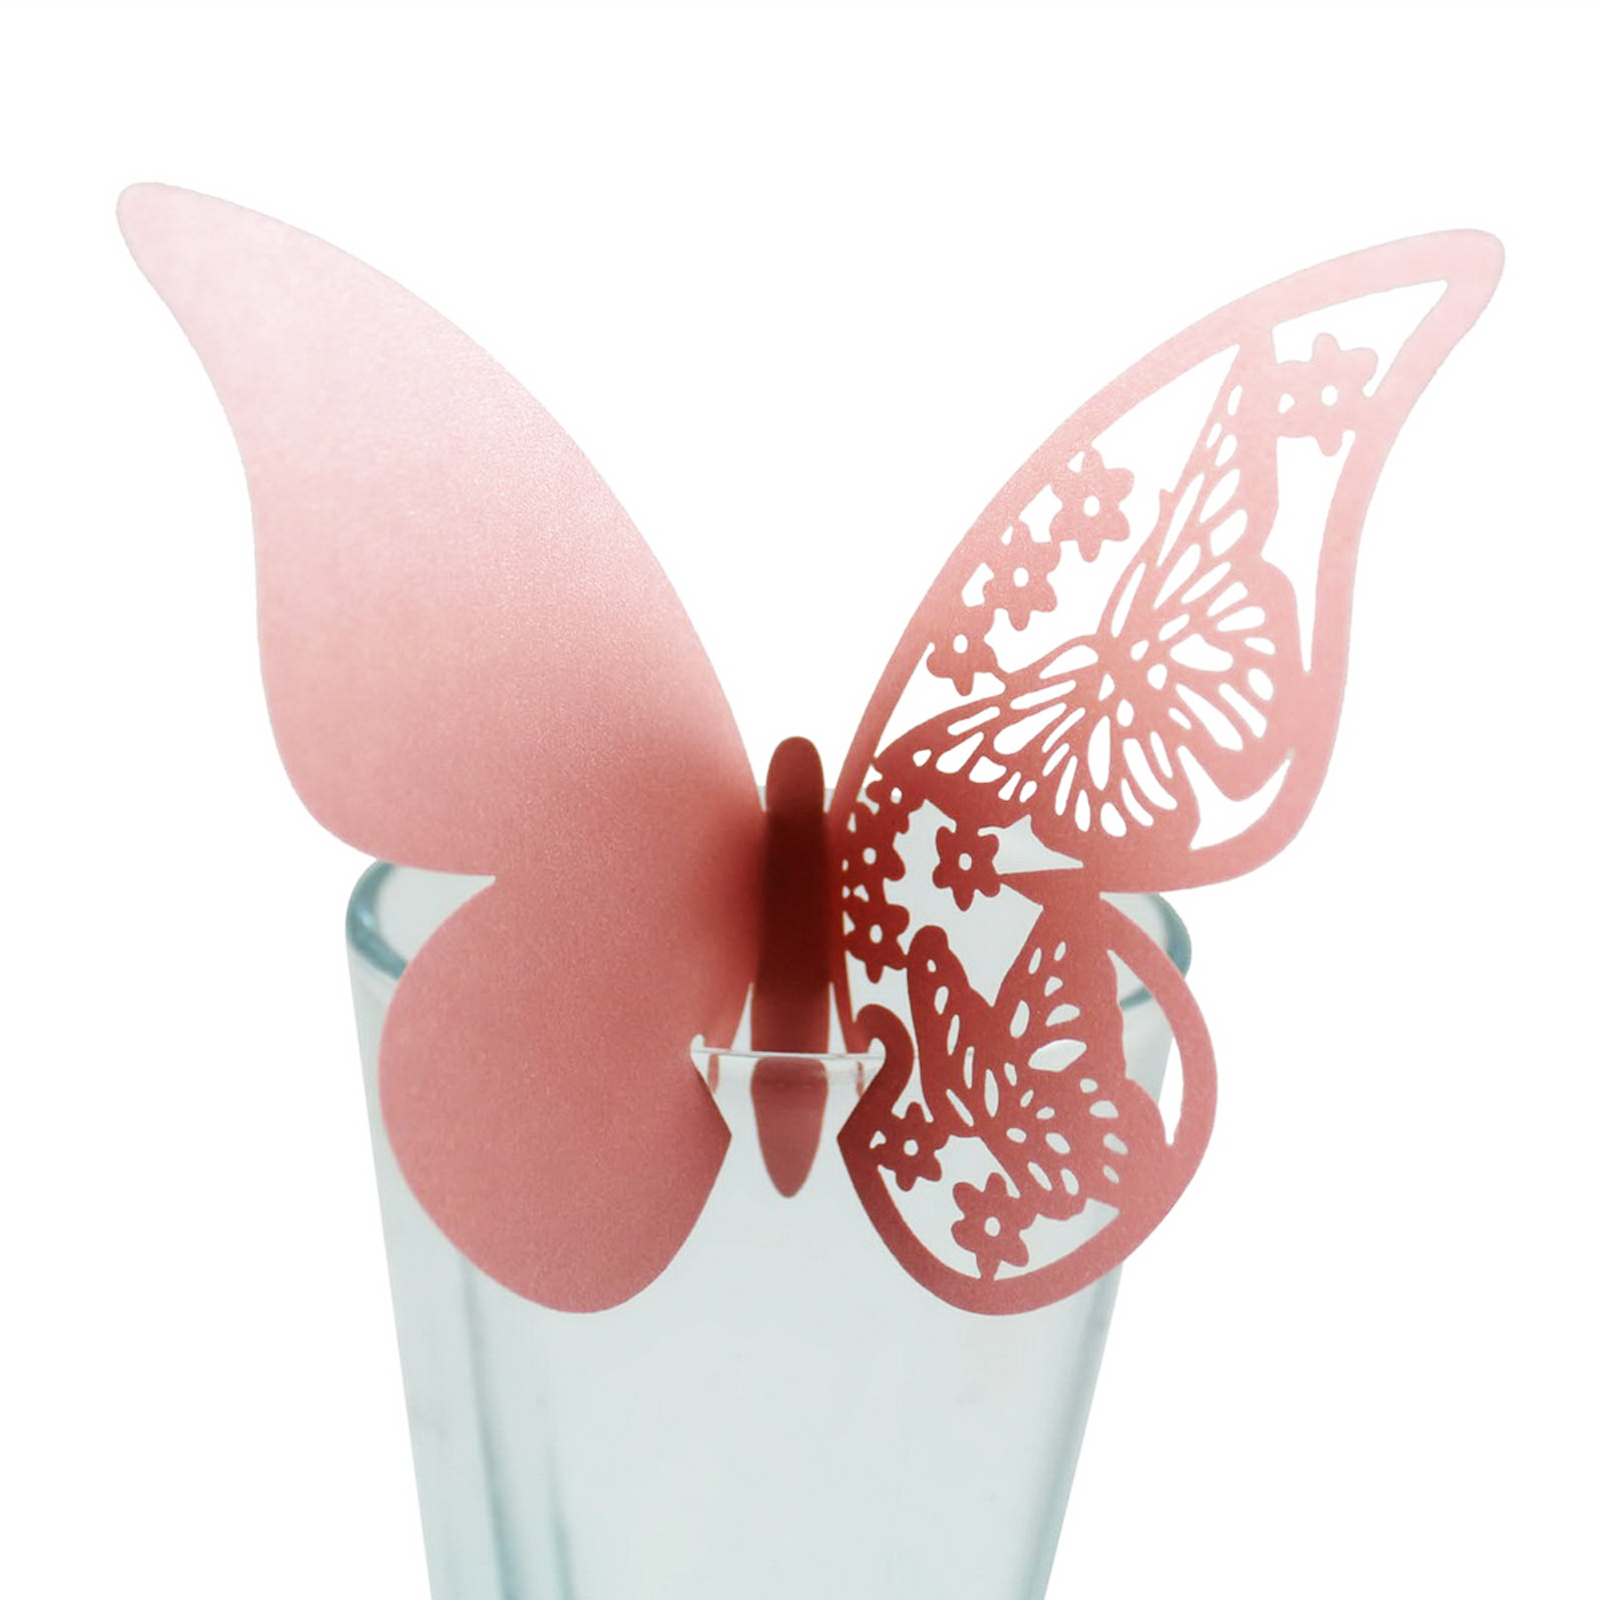 10pcs Table Mark Number Glass Laser Cut Butterfly Place Escort Wine Glass Cup DIY Paper Card for Wedding Party Festival Supply image